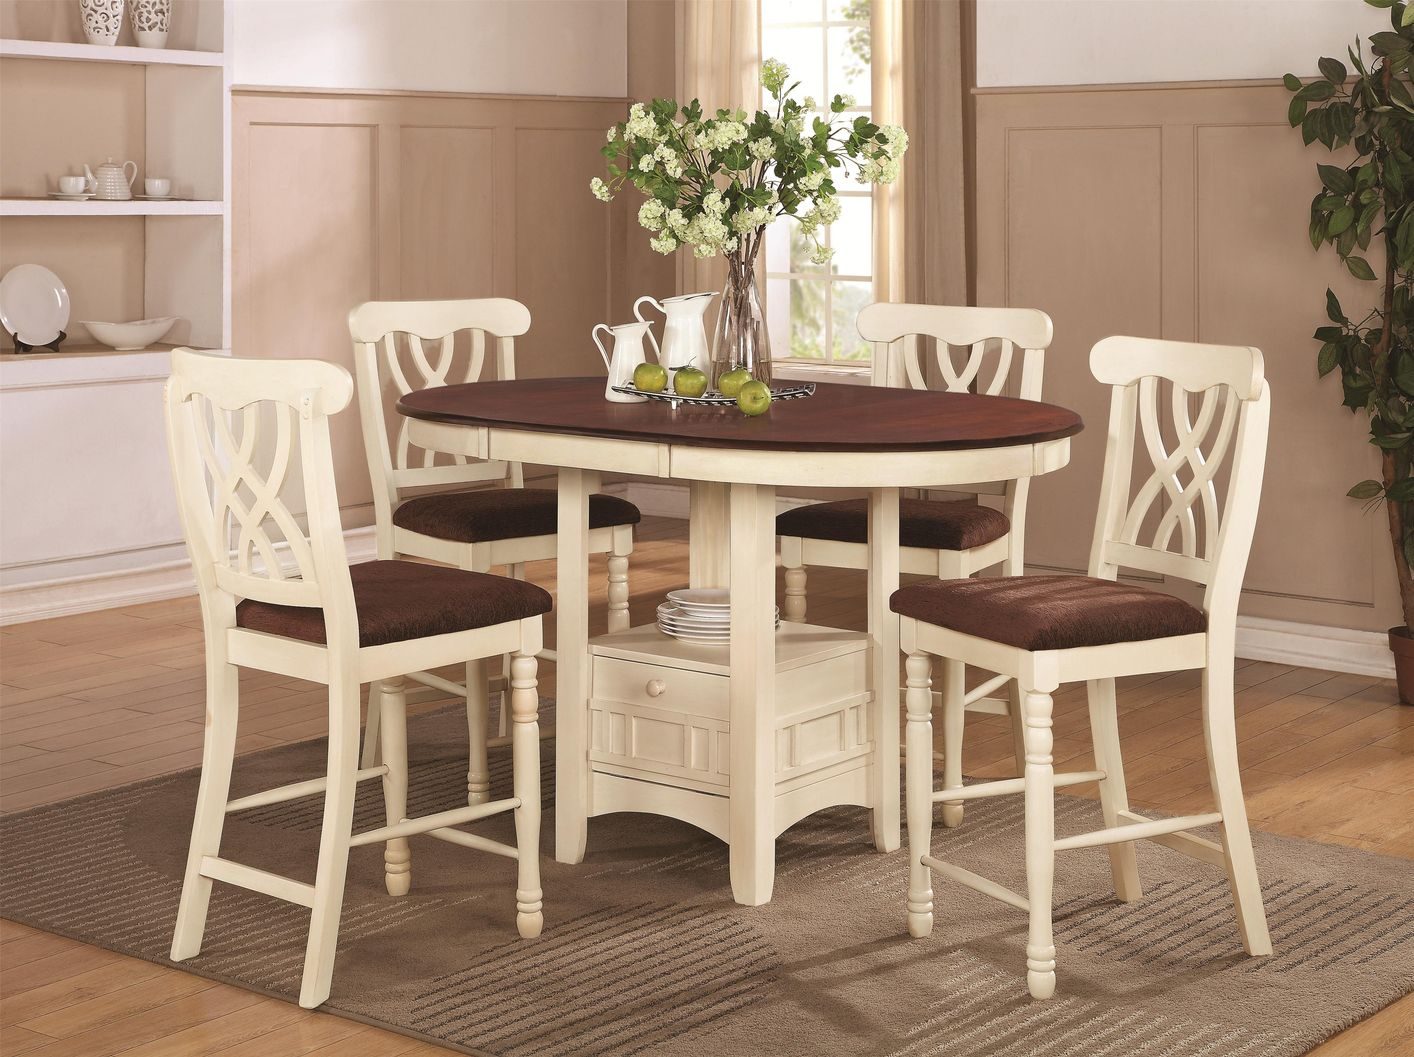 Kitchen Pub Table Addison white and cherry wood pub table set steal a sofa furniture addison white and cherry wood pub table set workwithnaturefo